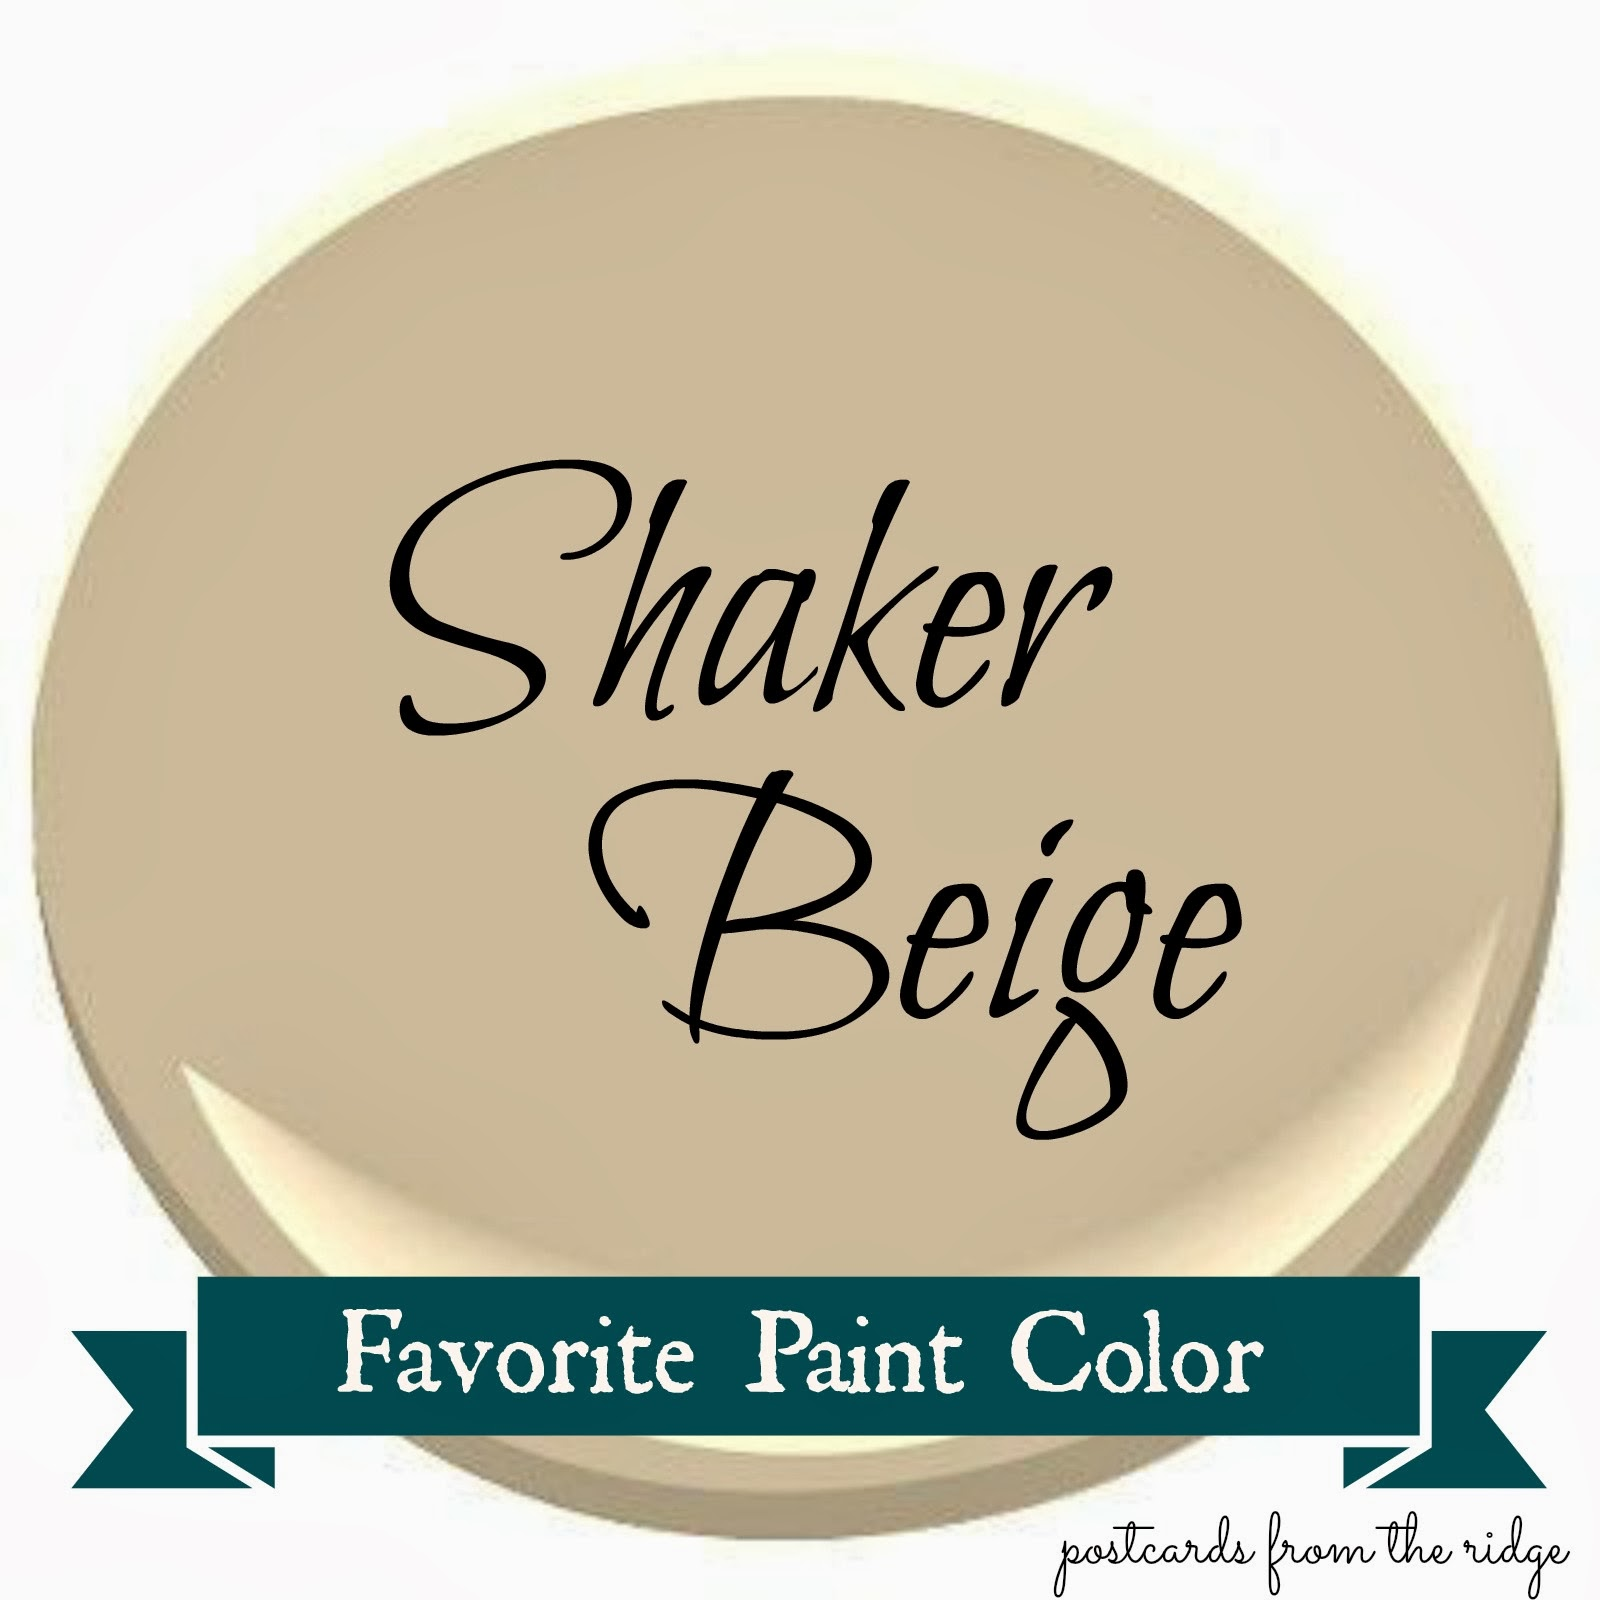 Benjamin moore shaker beige favorite paint color for Best beige paint color